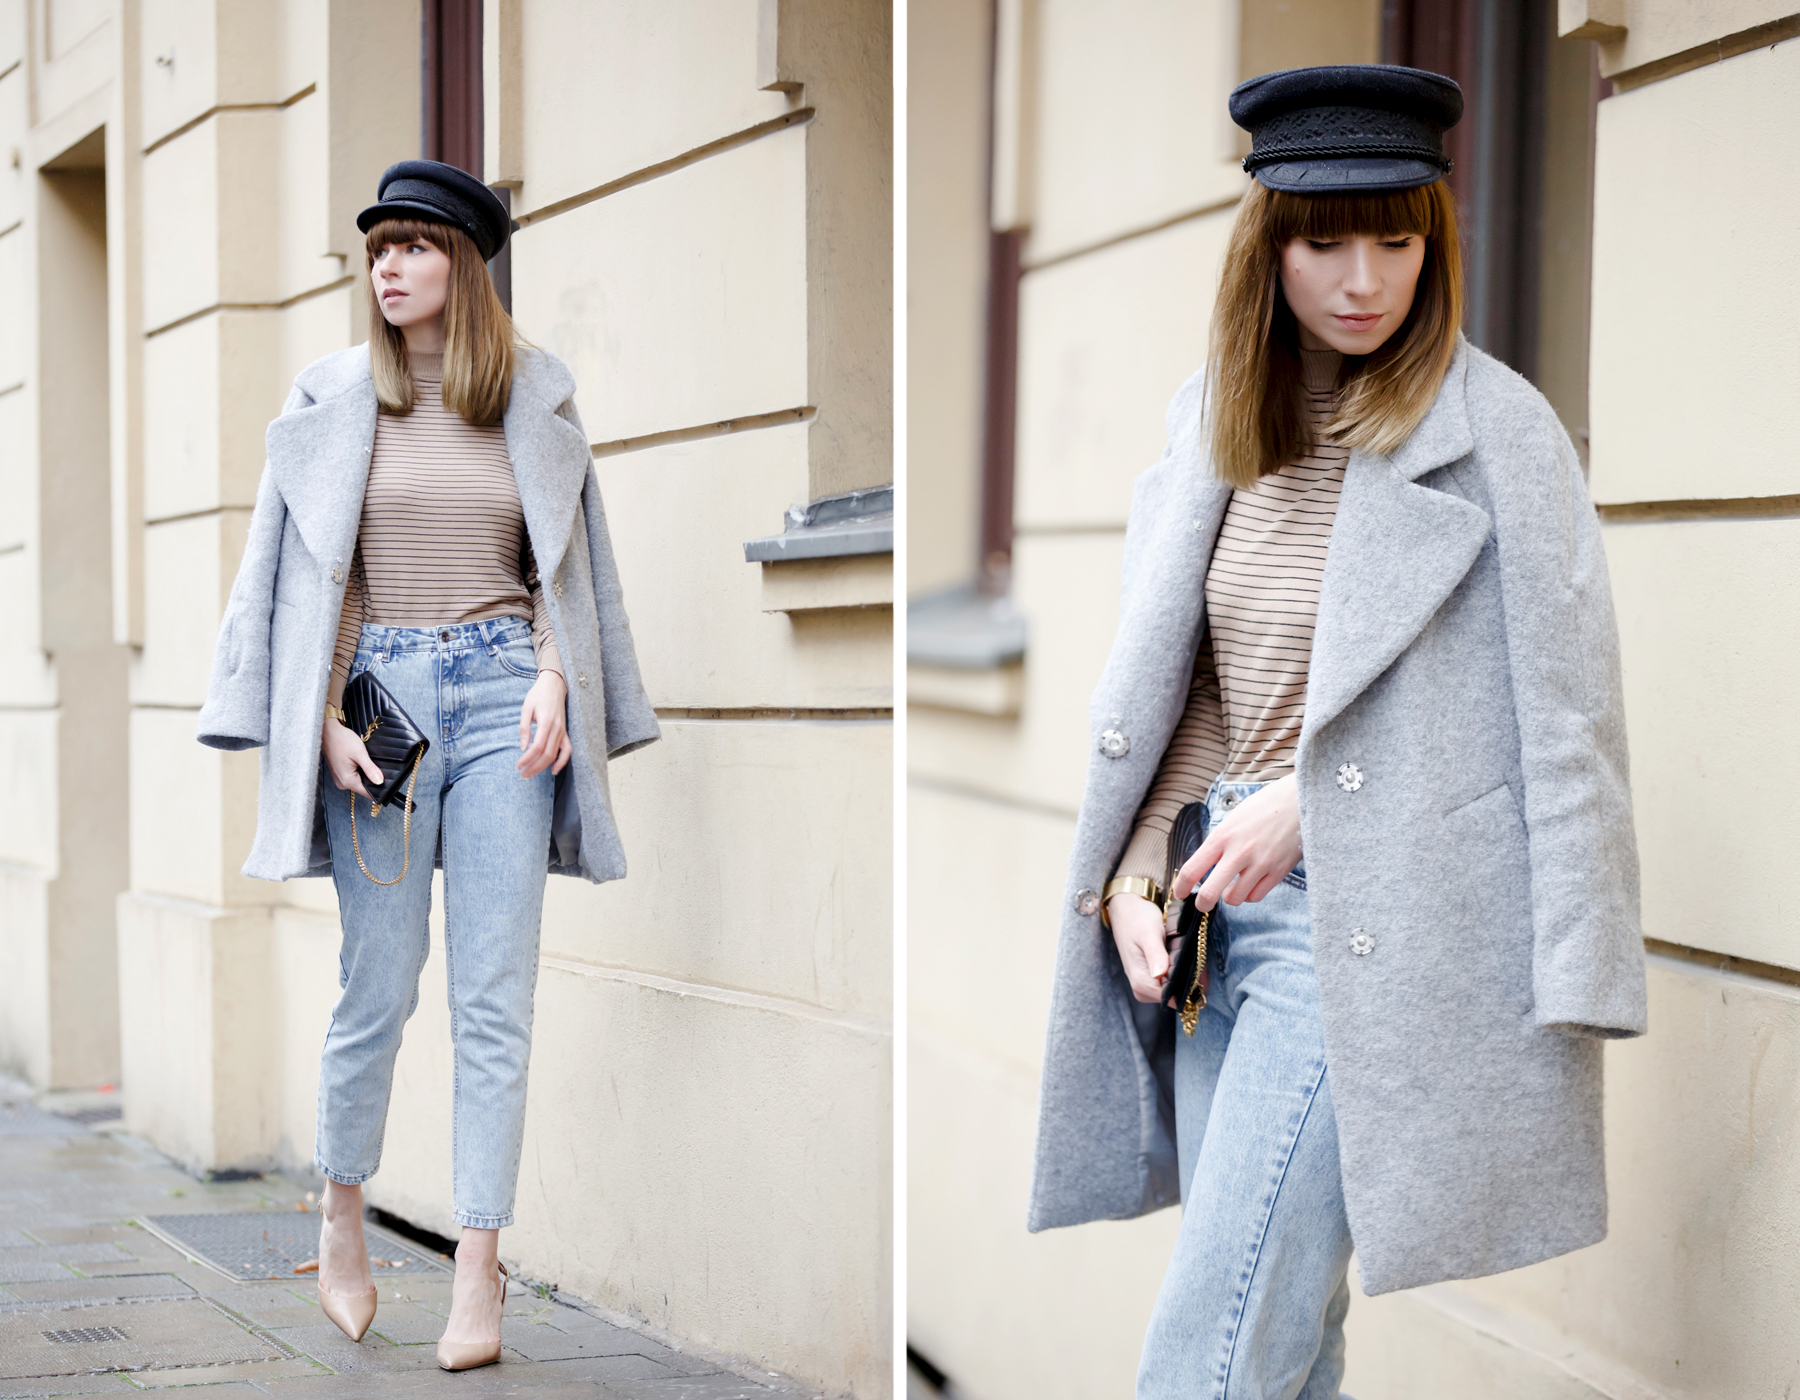 stripes denim 80s french hat parisian parisienne style stripe brown heels sam edelman ysl saint laurent paris coat chic bangs brunette modeblog cats & dogs blog ricarda schernus fashionblogger germany 6